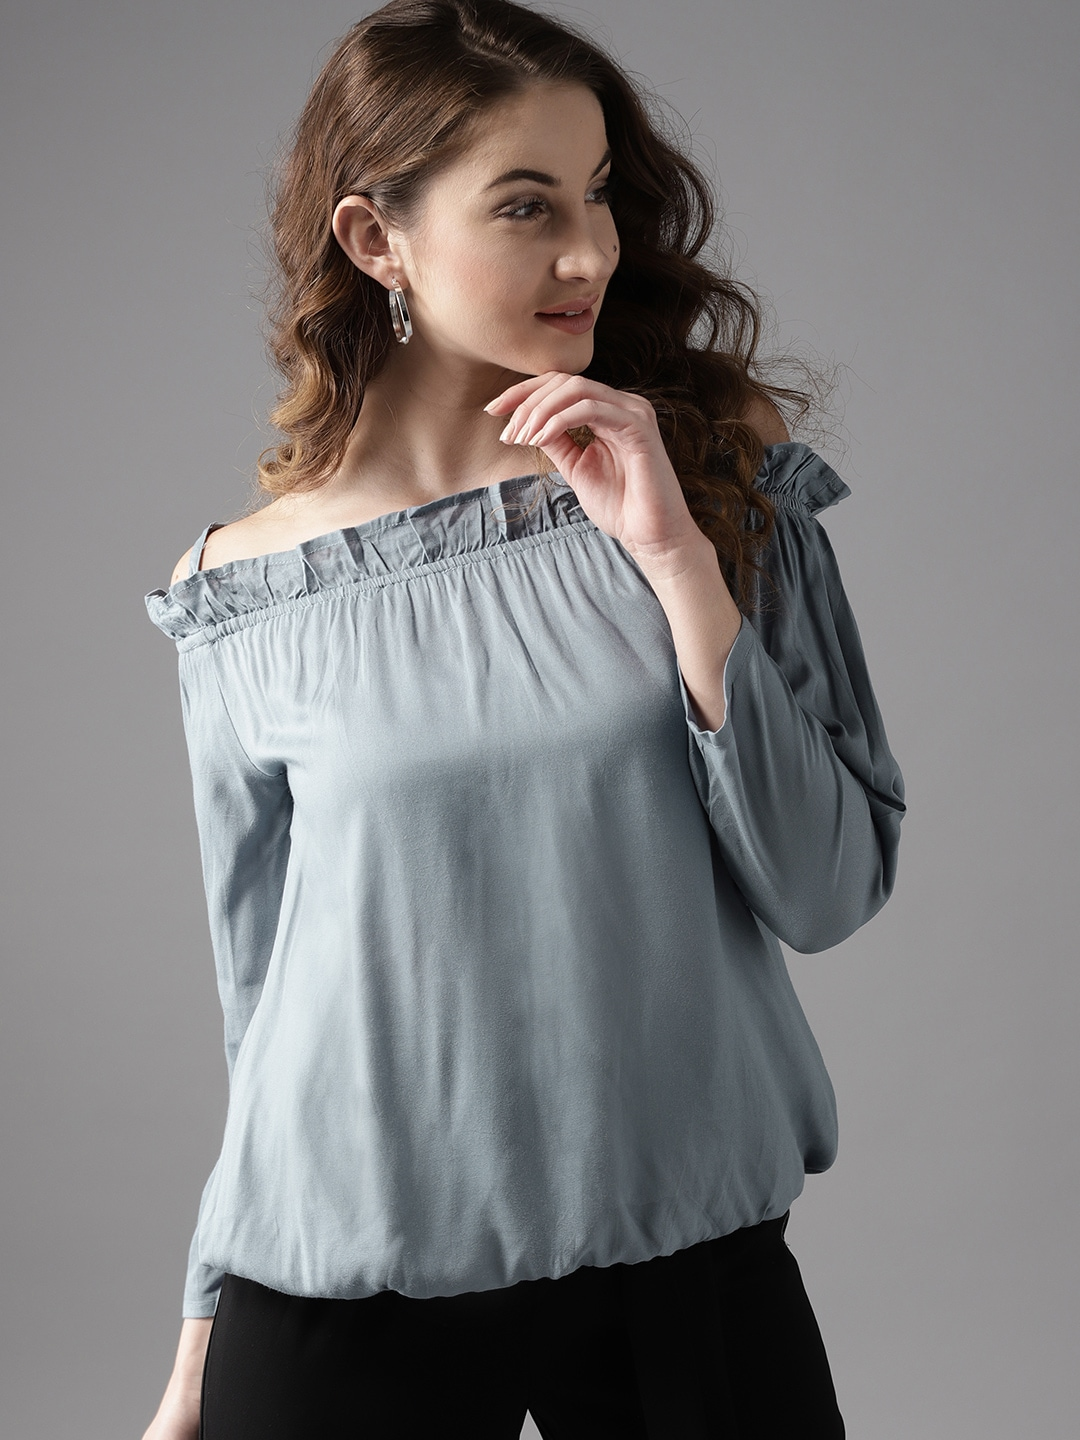 391a21d5338cc Casual Tops - Buy Casual Tops for Women   Girls Online